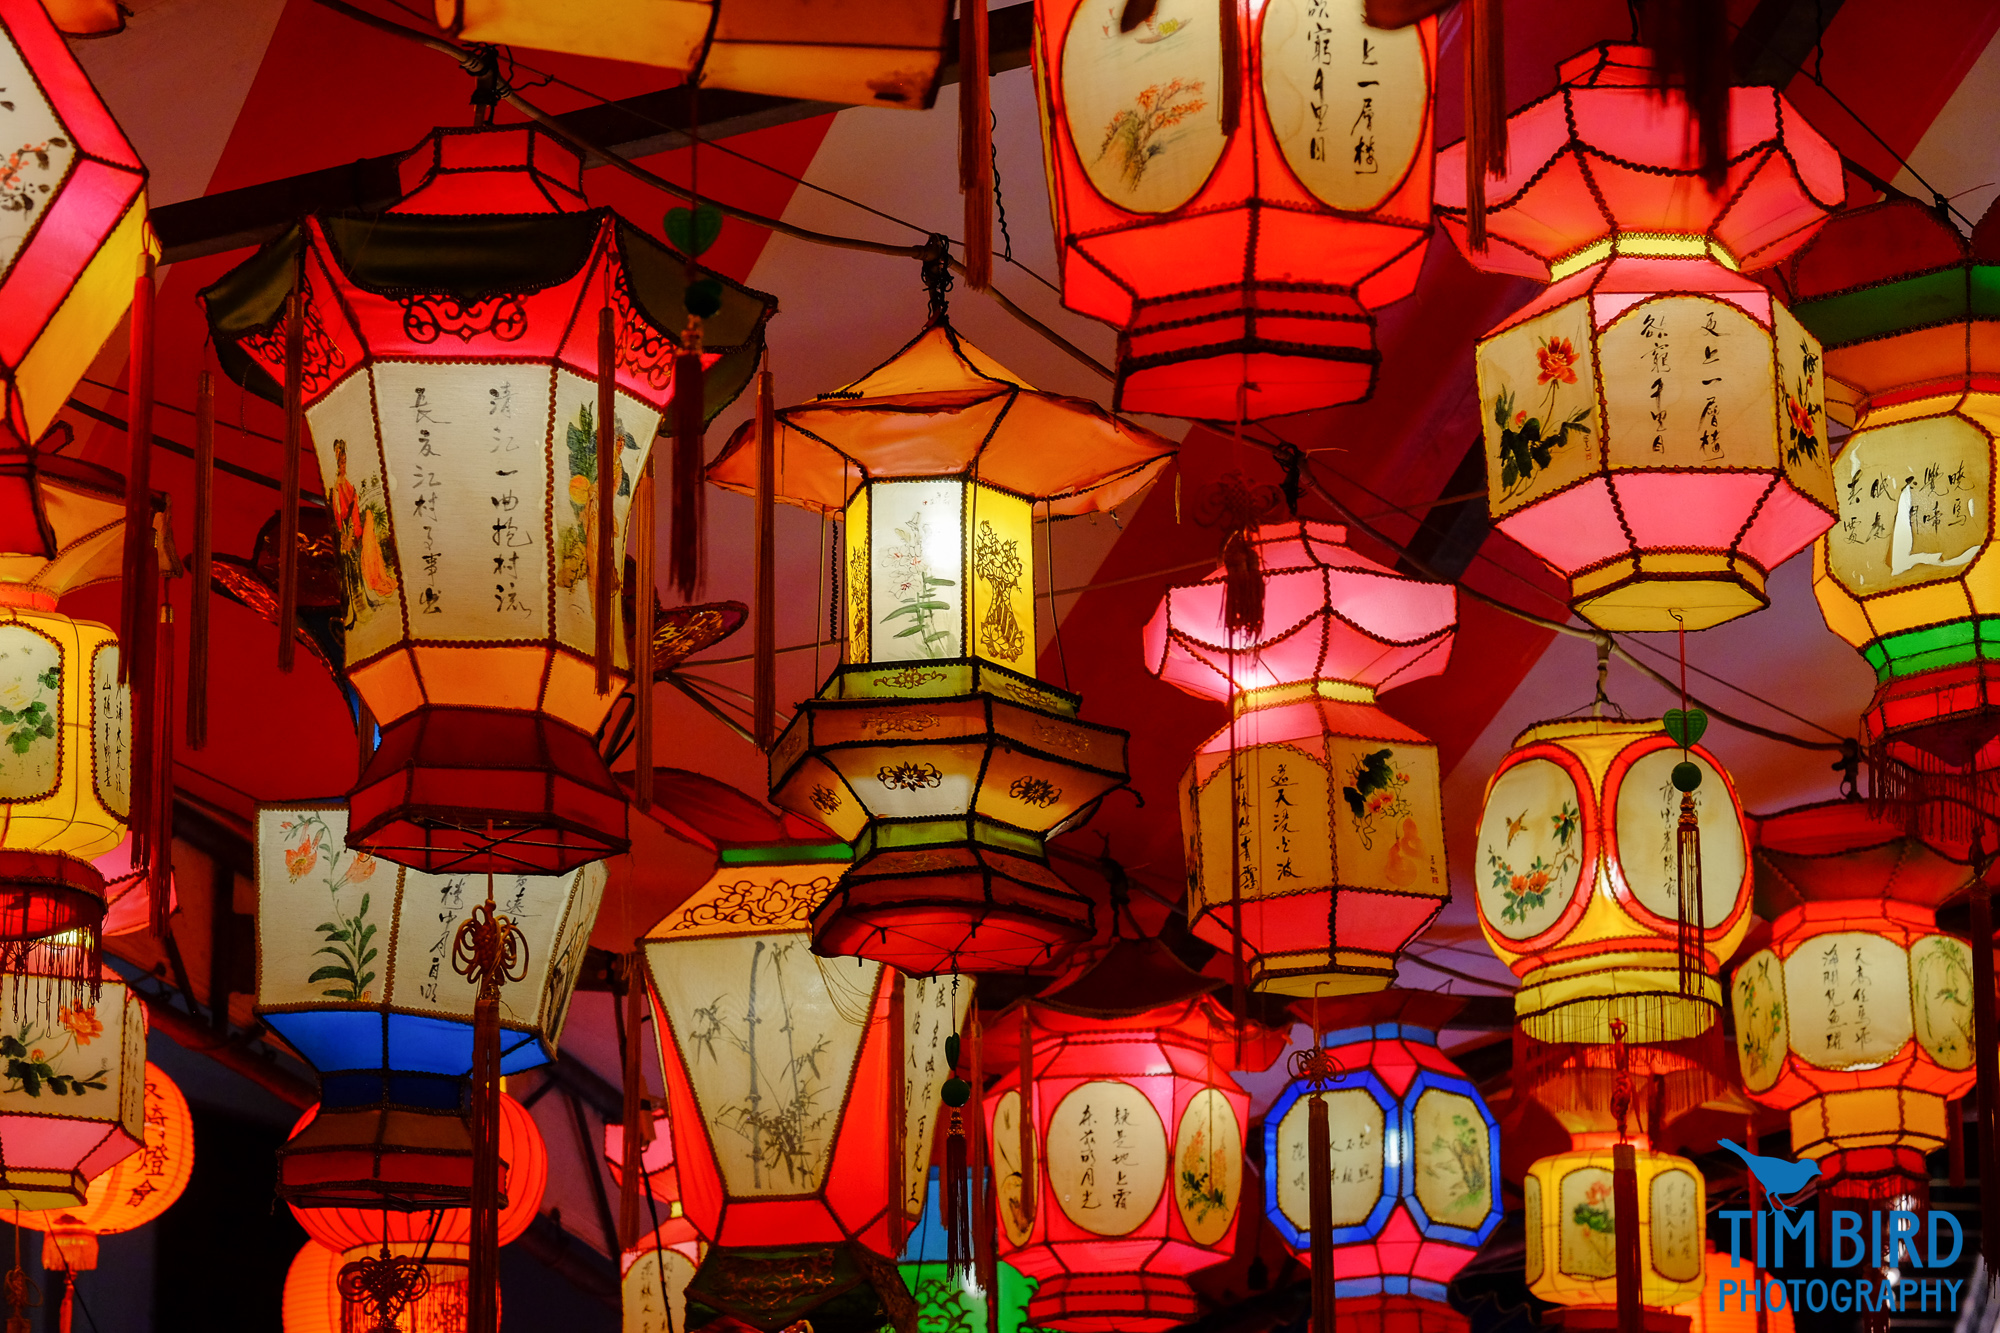 Tim-Bird.-Nagasaki-Lantern-Festival-Japan